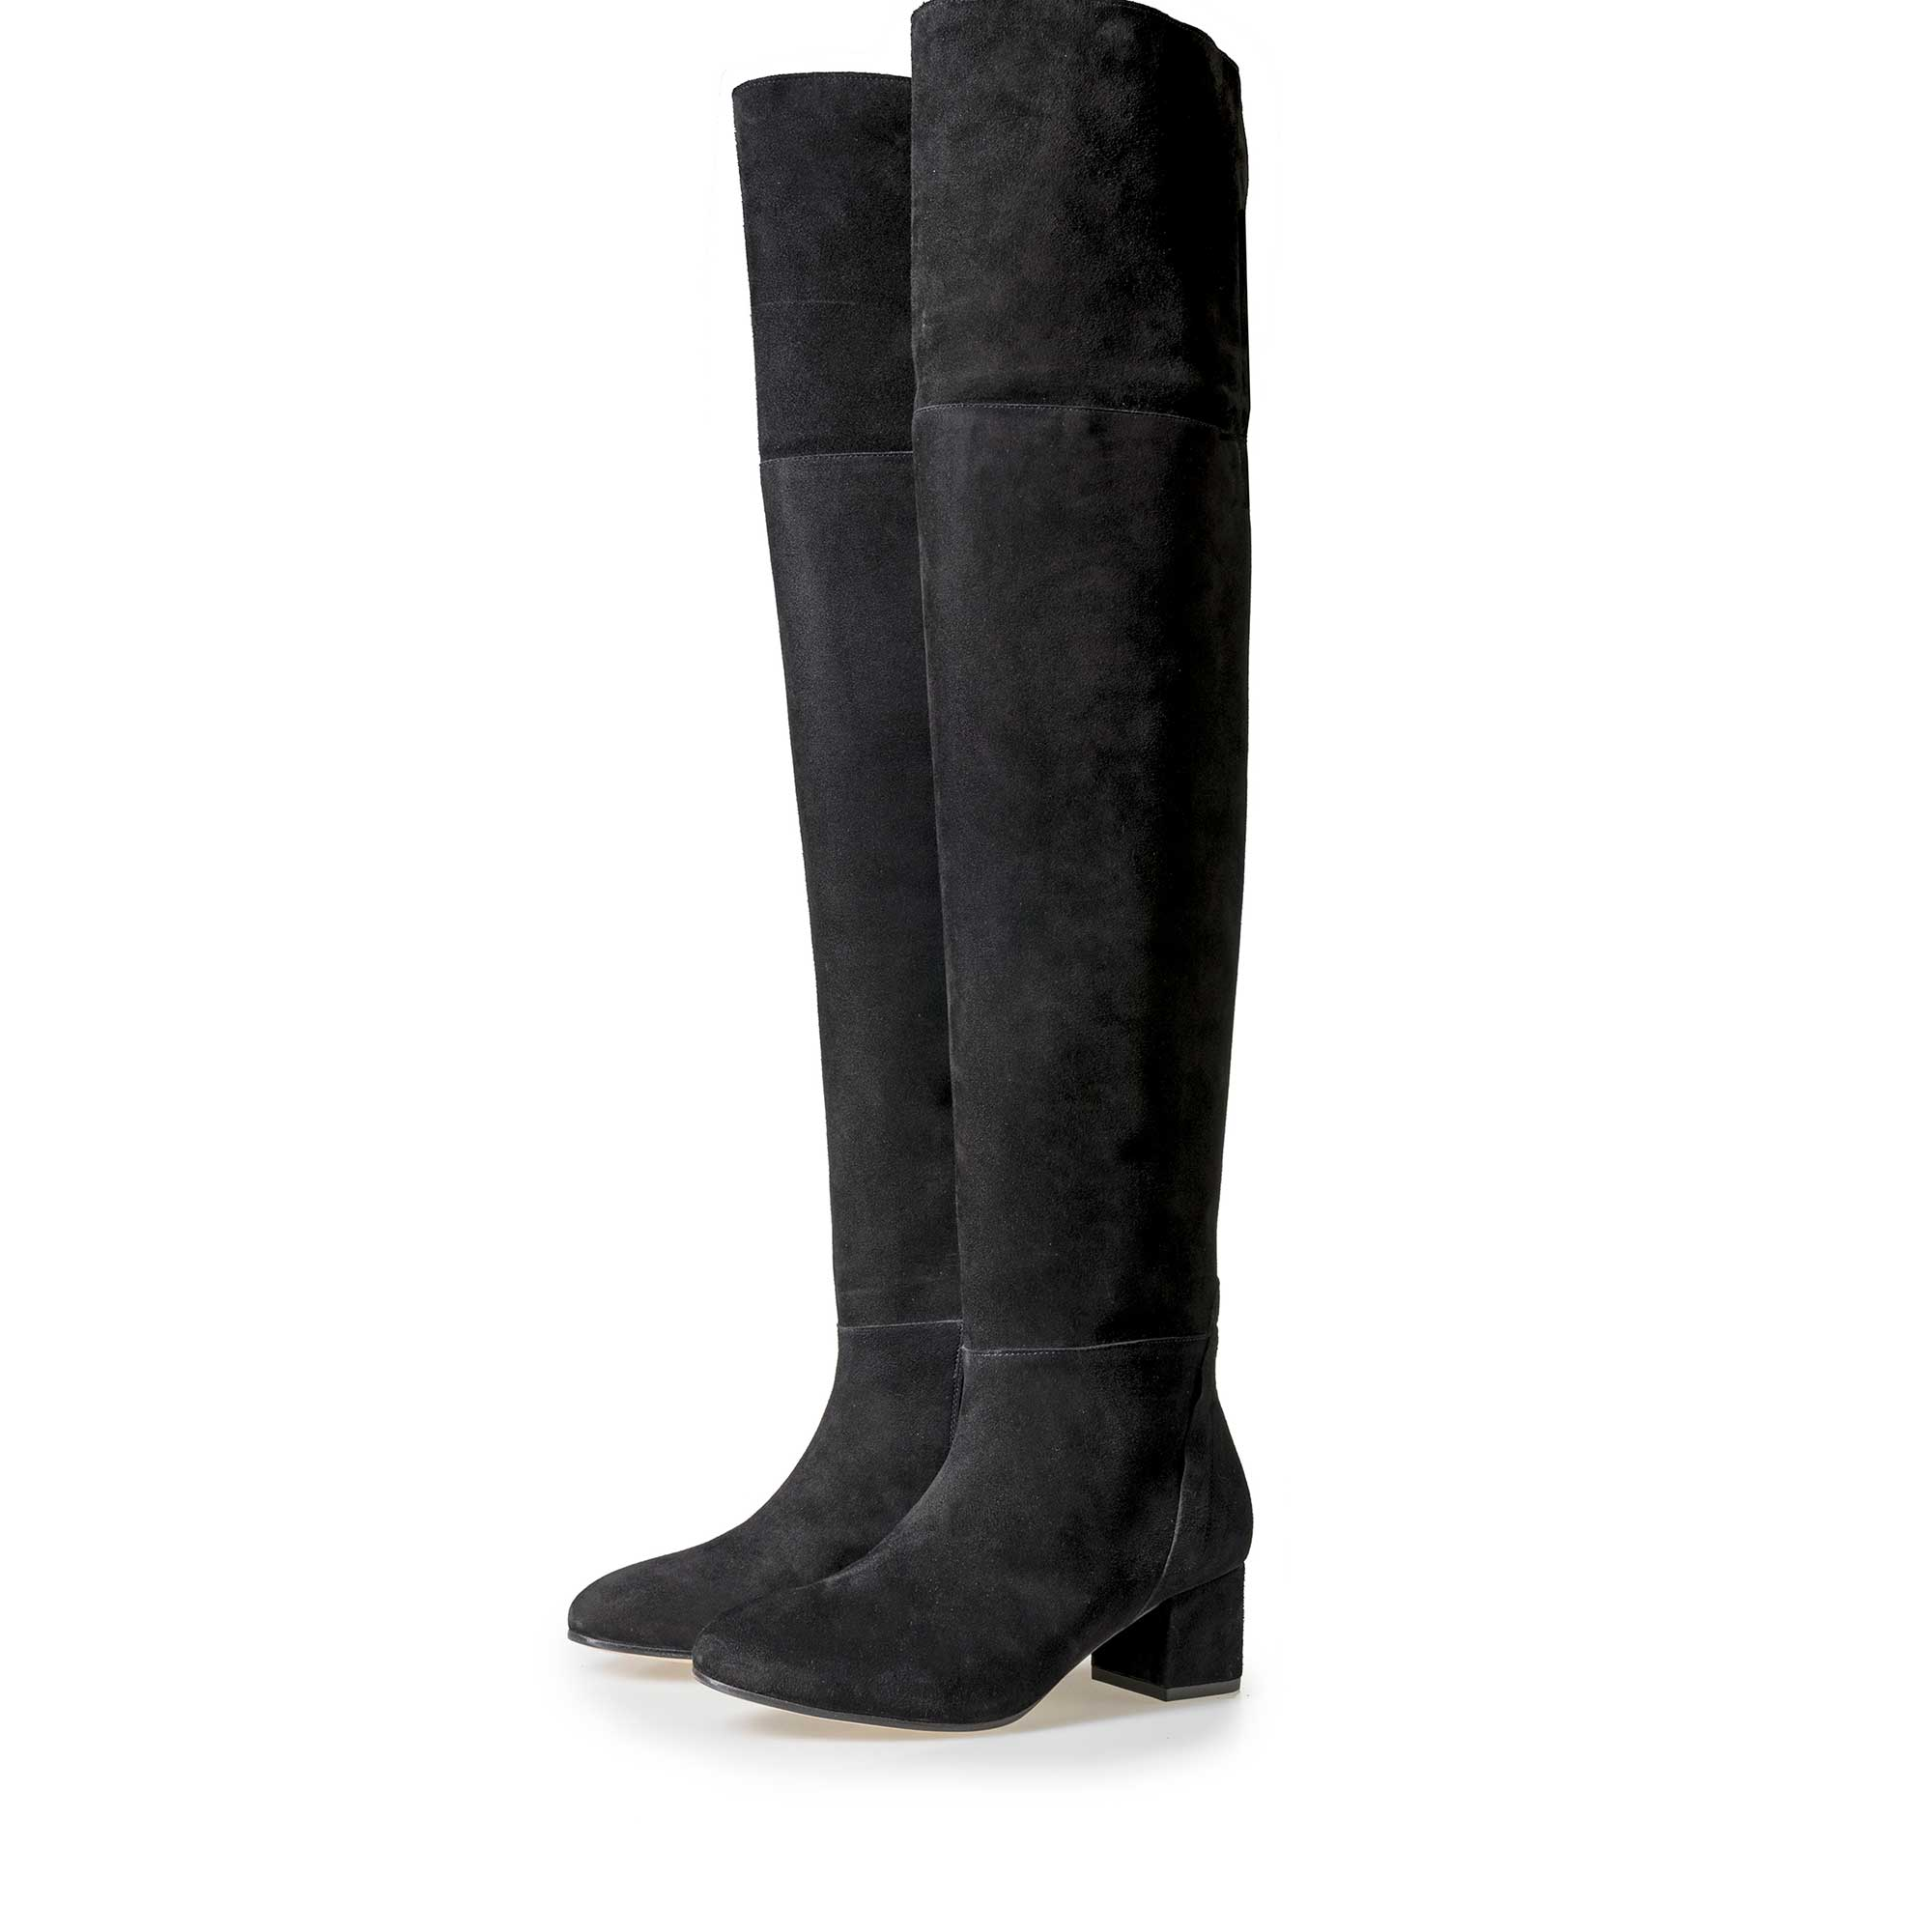 85182/01 - Floris van Bommel women's black suede leather over knee boots